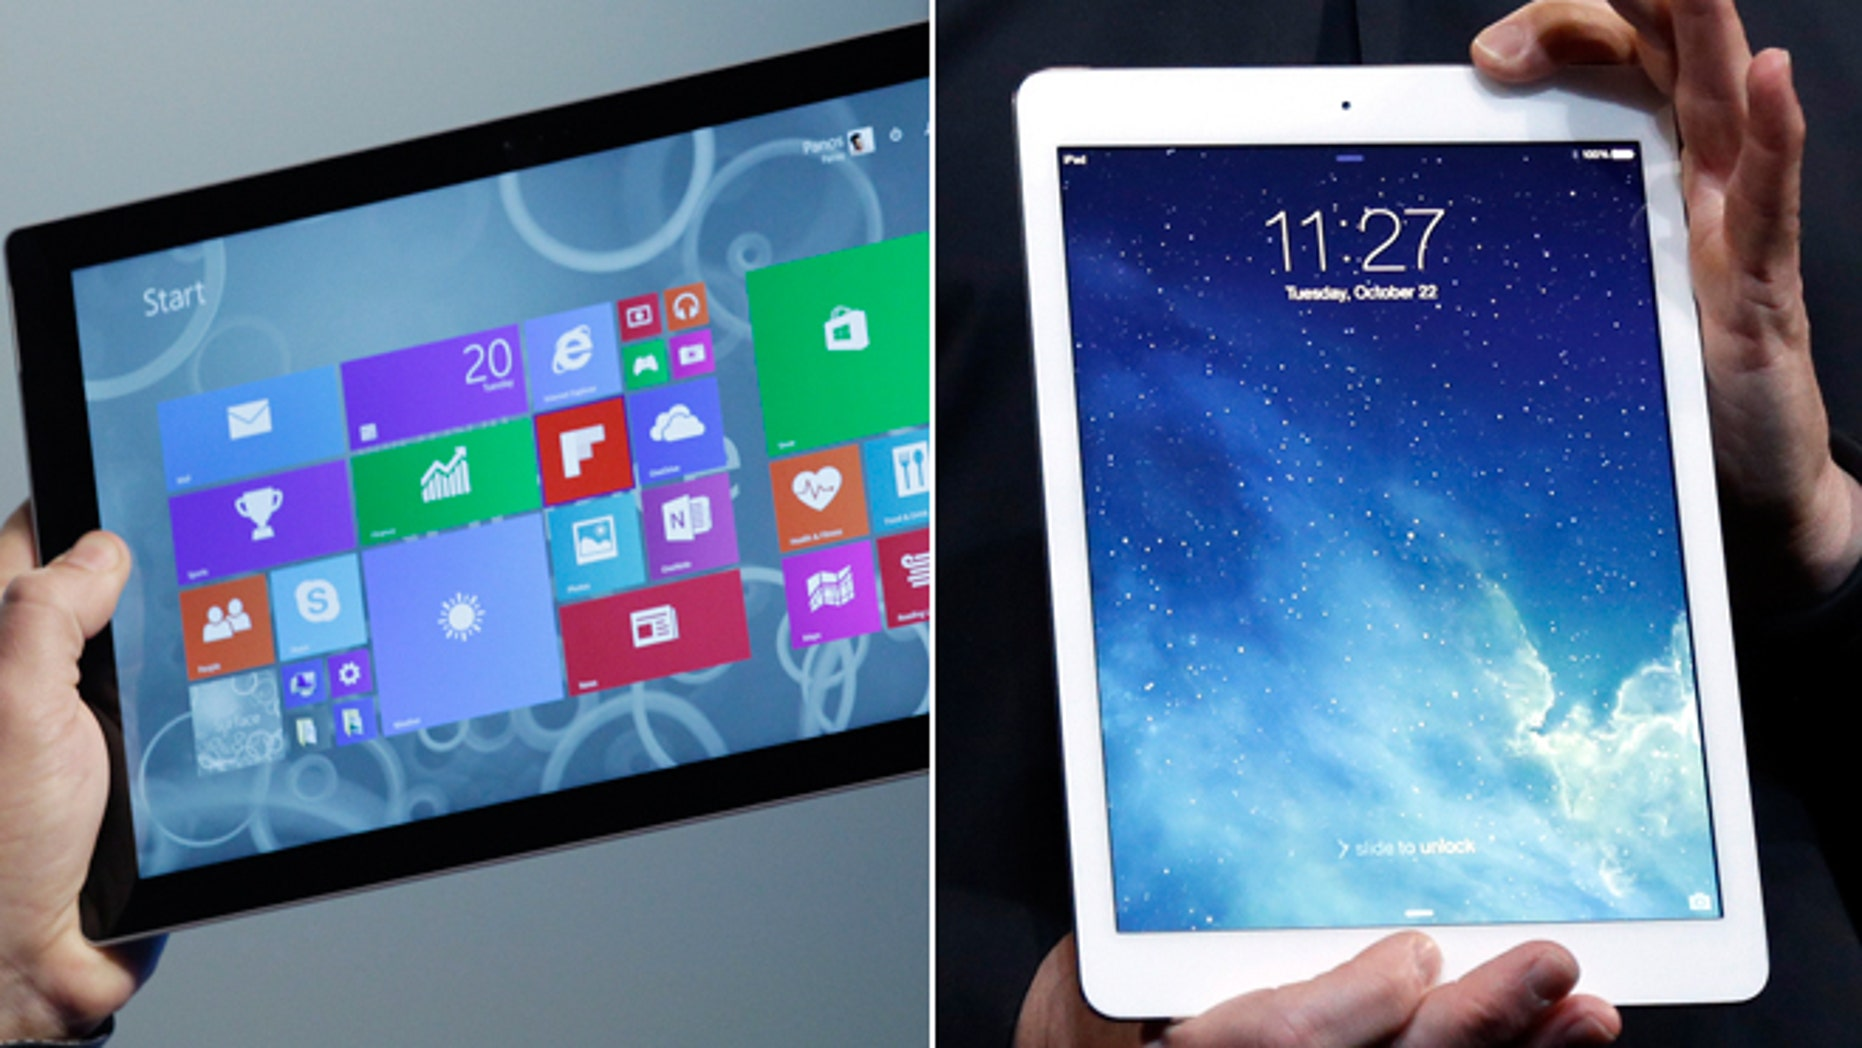 Microsoft's Surface Pro 3 tablet and the iPad Air.